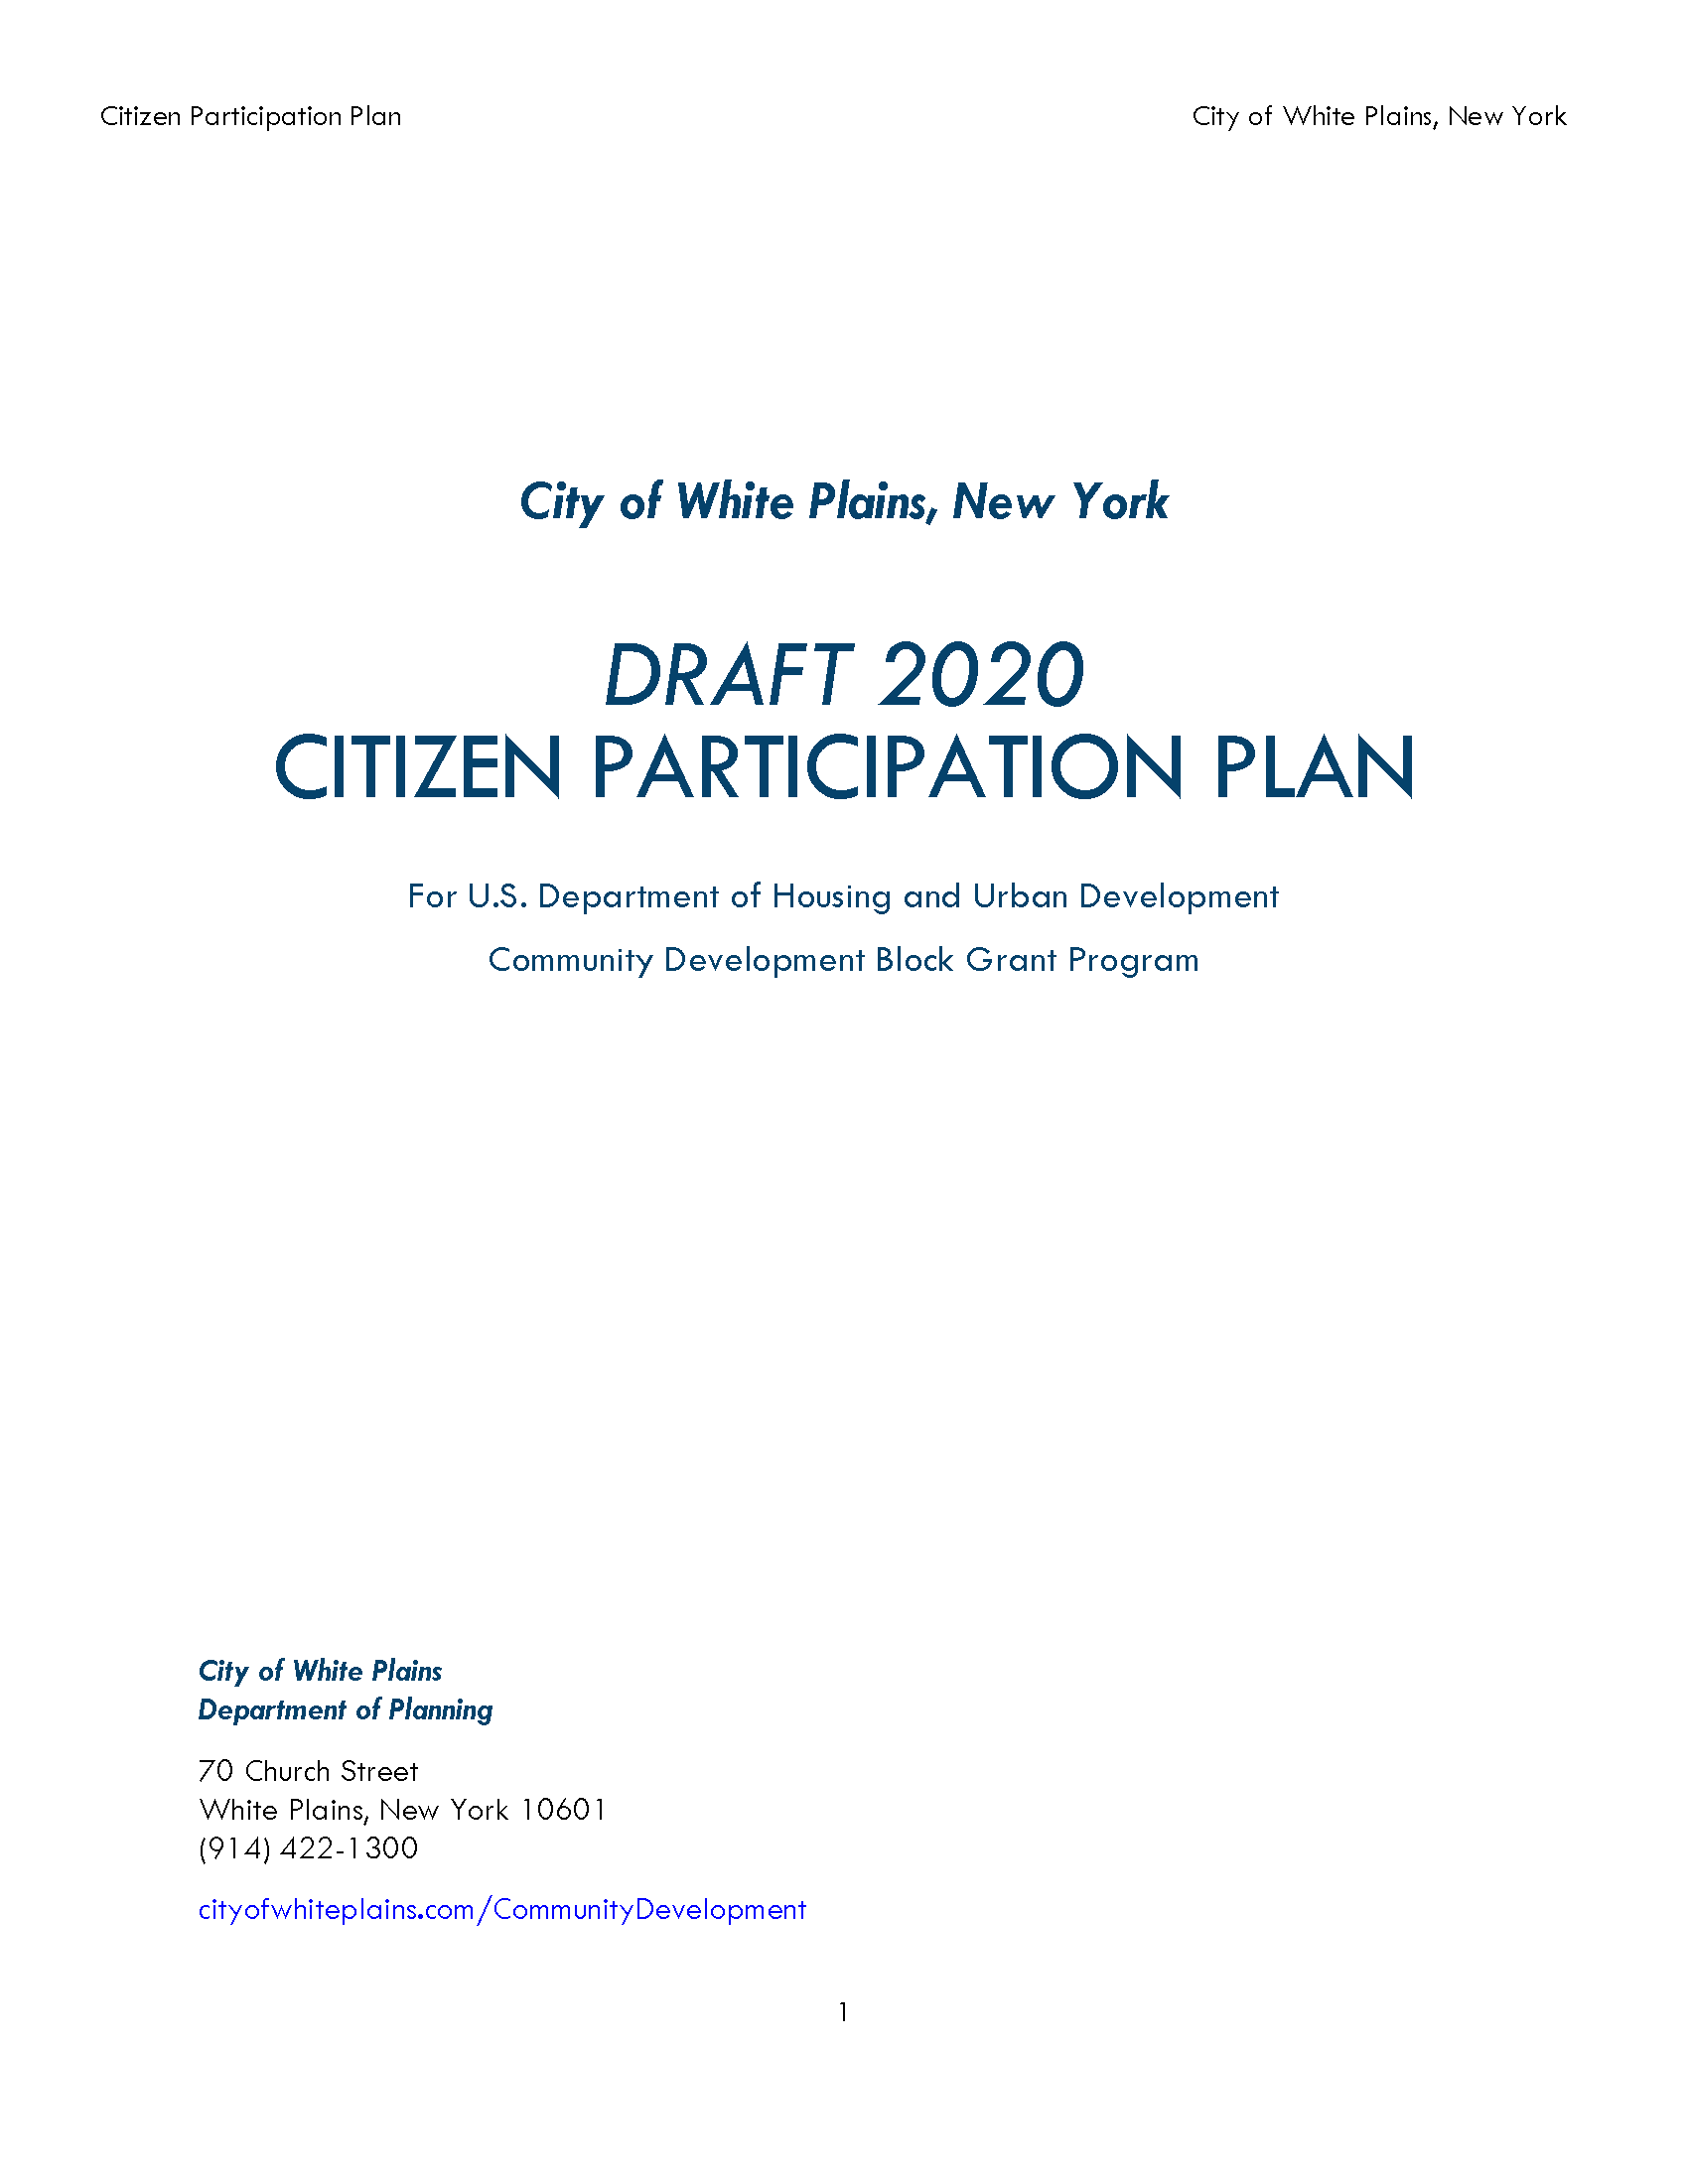 Draft 2020 CPP Cover Page